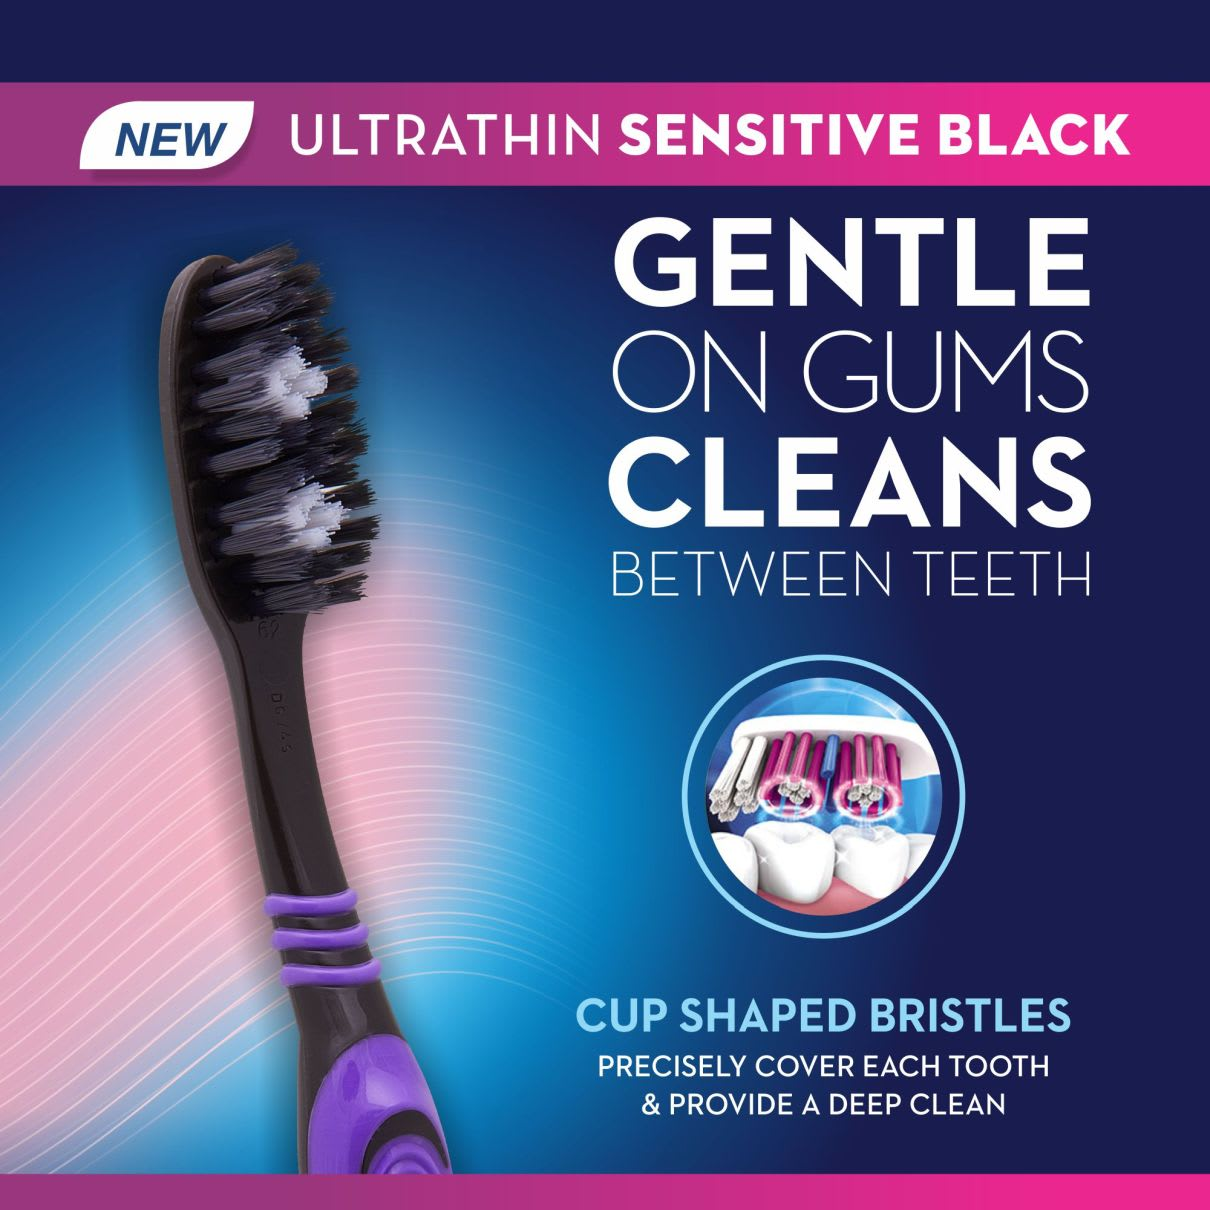 Oral-B Ultrathin Sensitive Black toothbrush